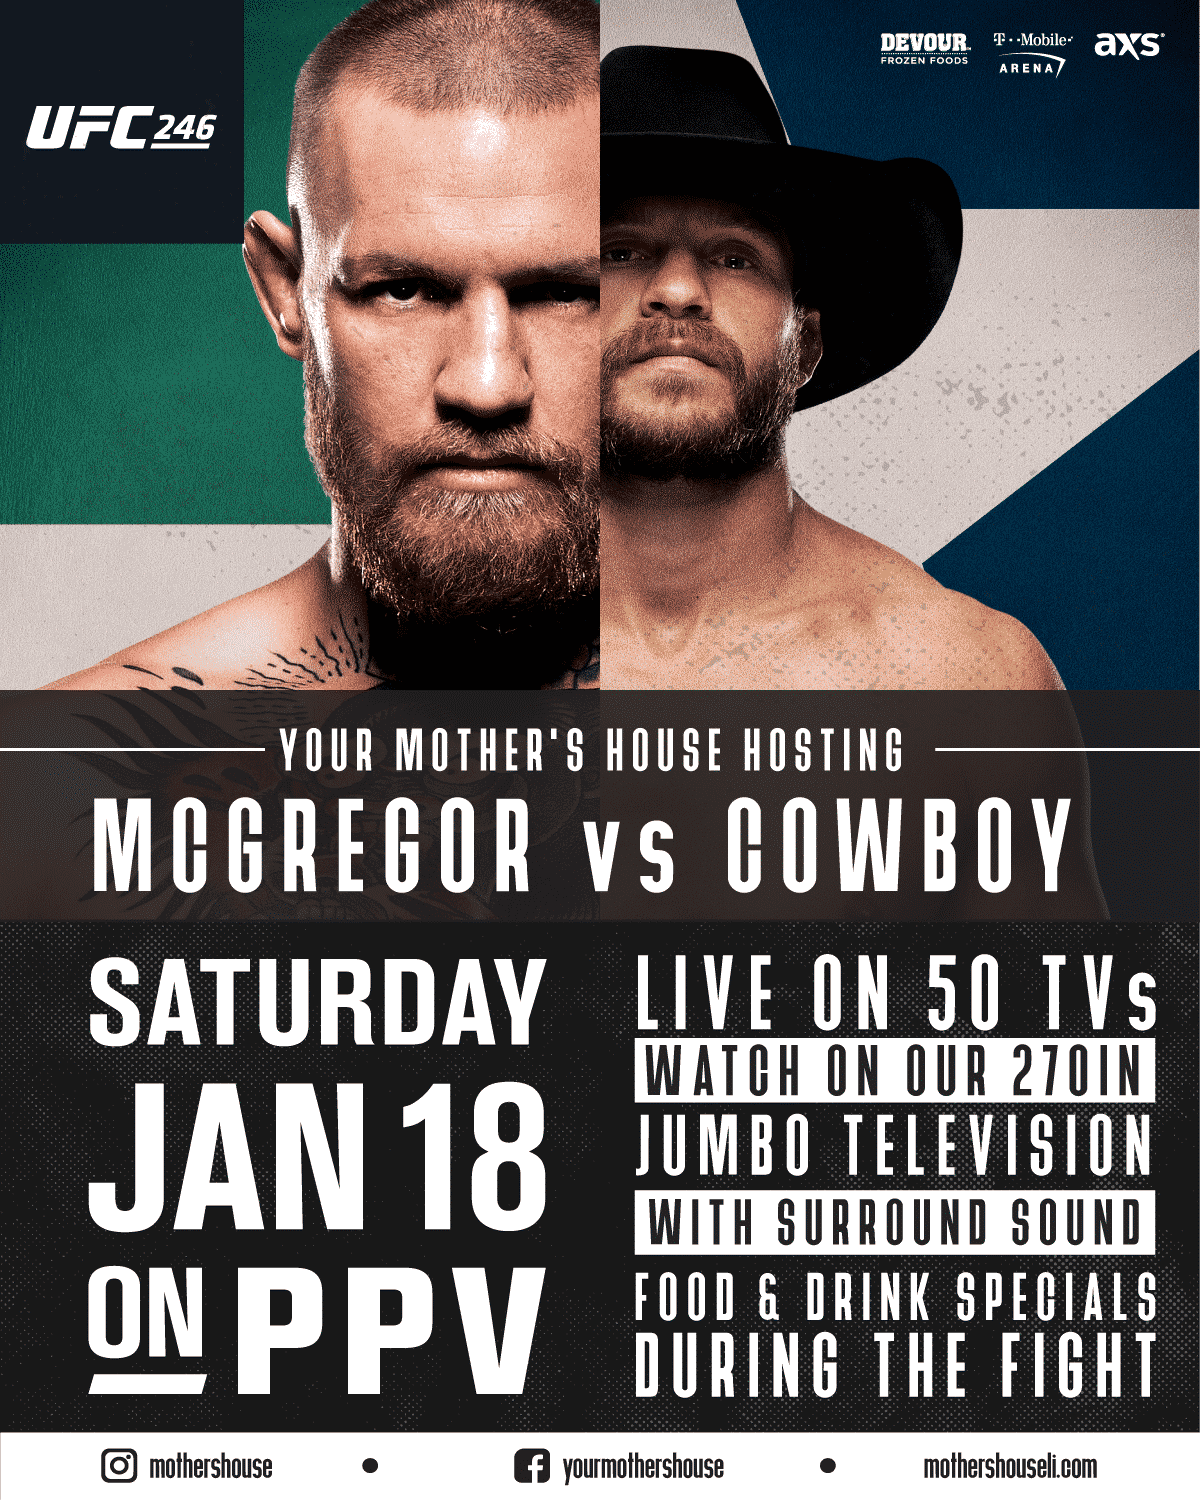 Flyer for Your Mother's House hosting McGregor vs Cowboy, Saturday. Jan 18th on PPV. Live on 50 TVs - watch on our 270in jumbo television with surround sound, food & drink specials during the fight